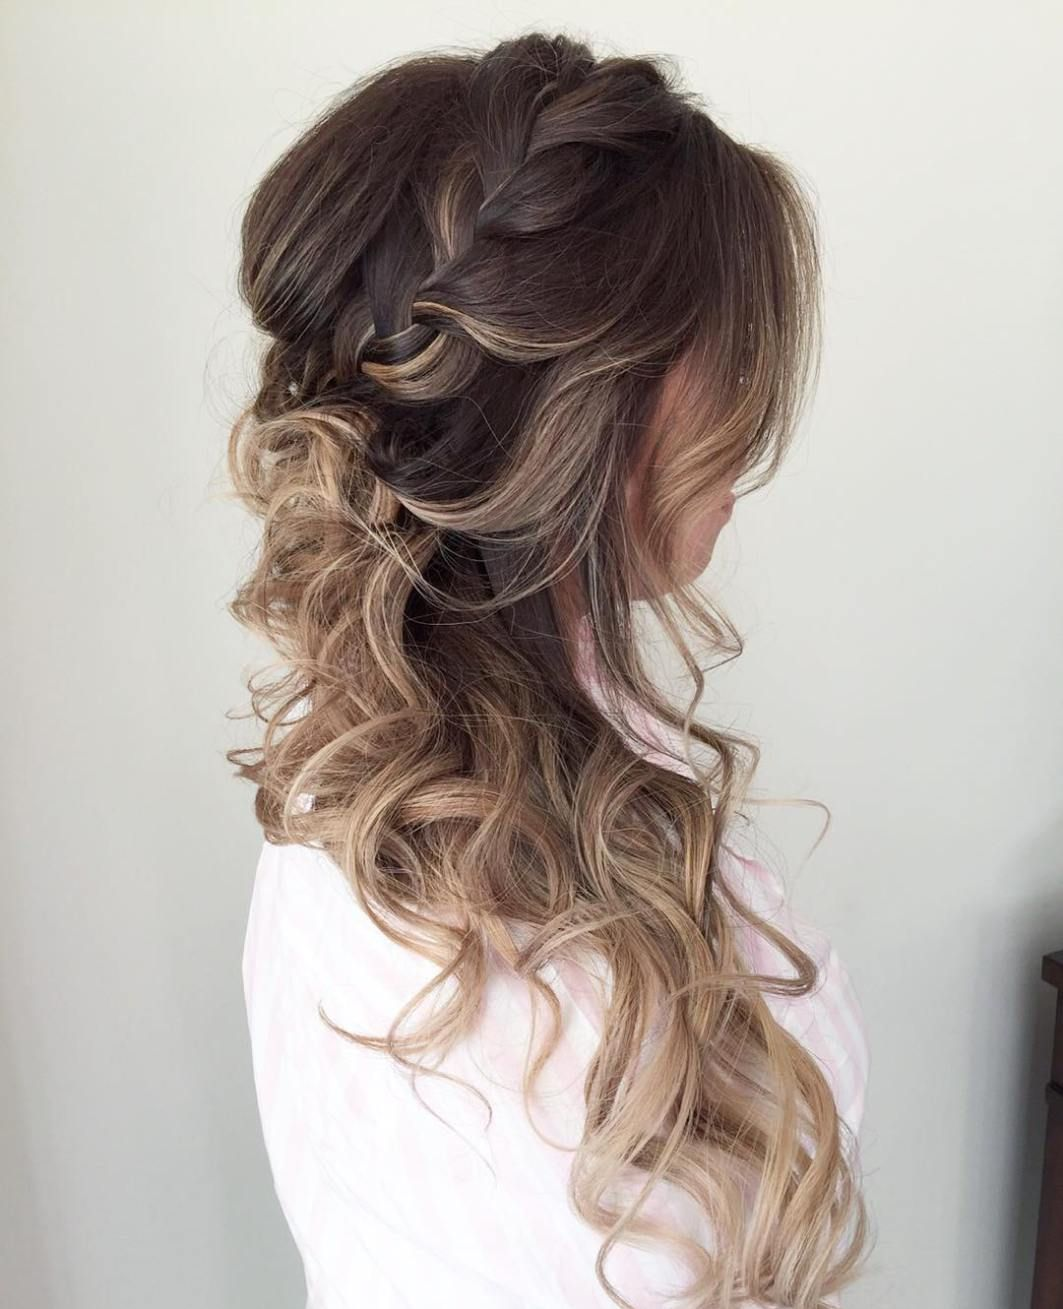 40 picture-perfect hairstyles for long thin hair | side hairstyles